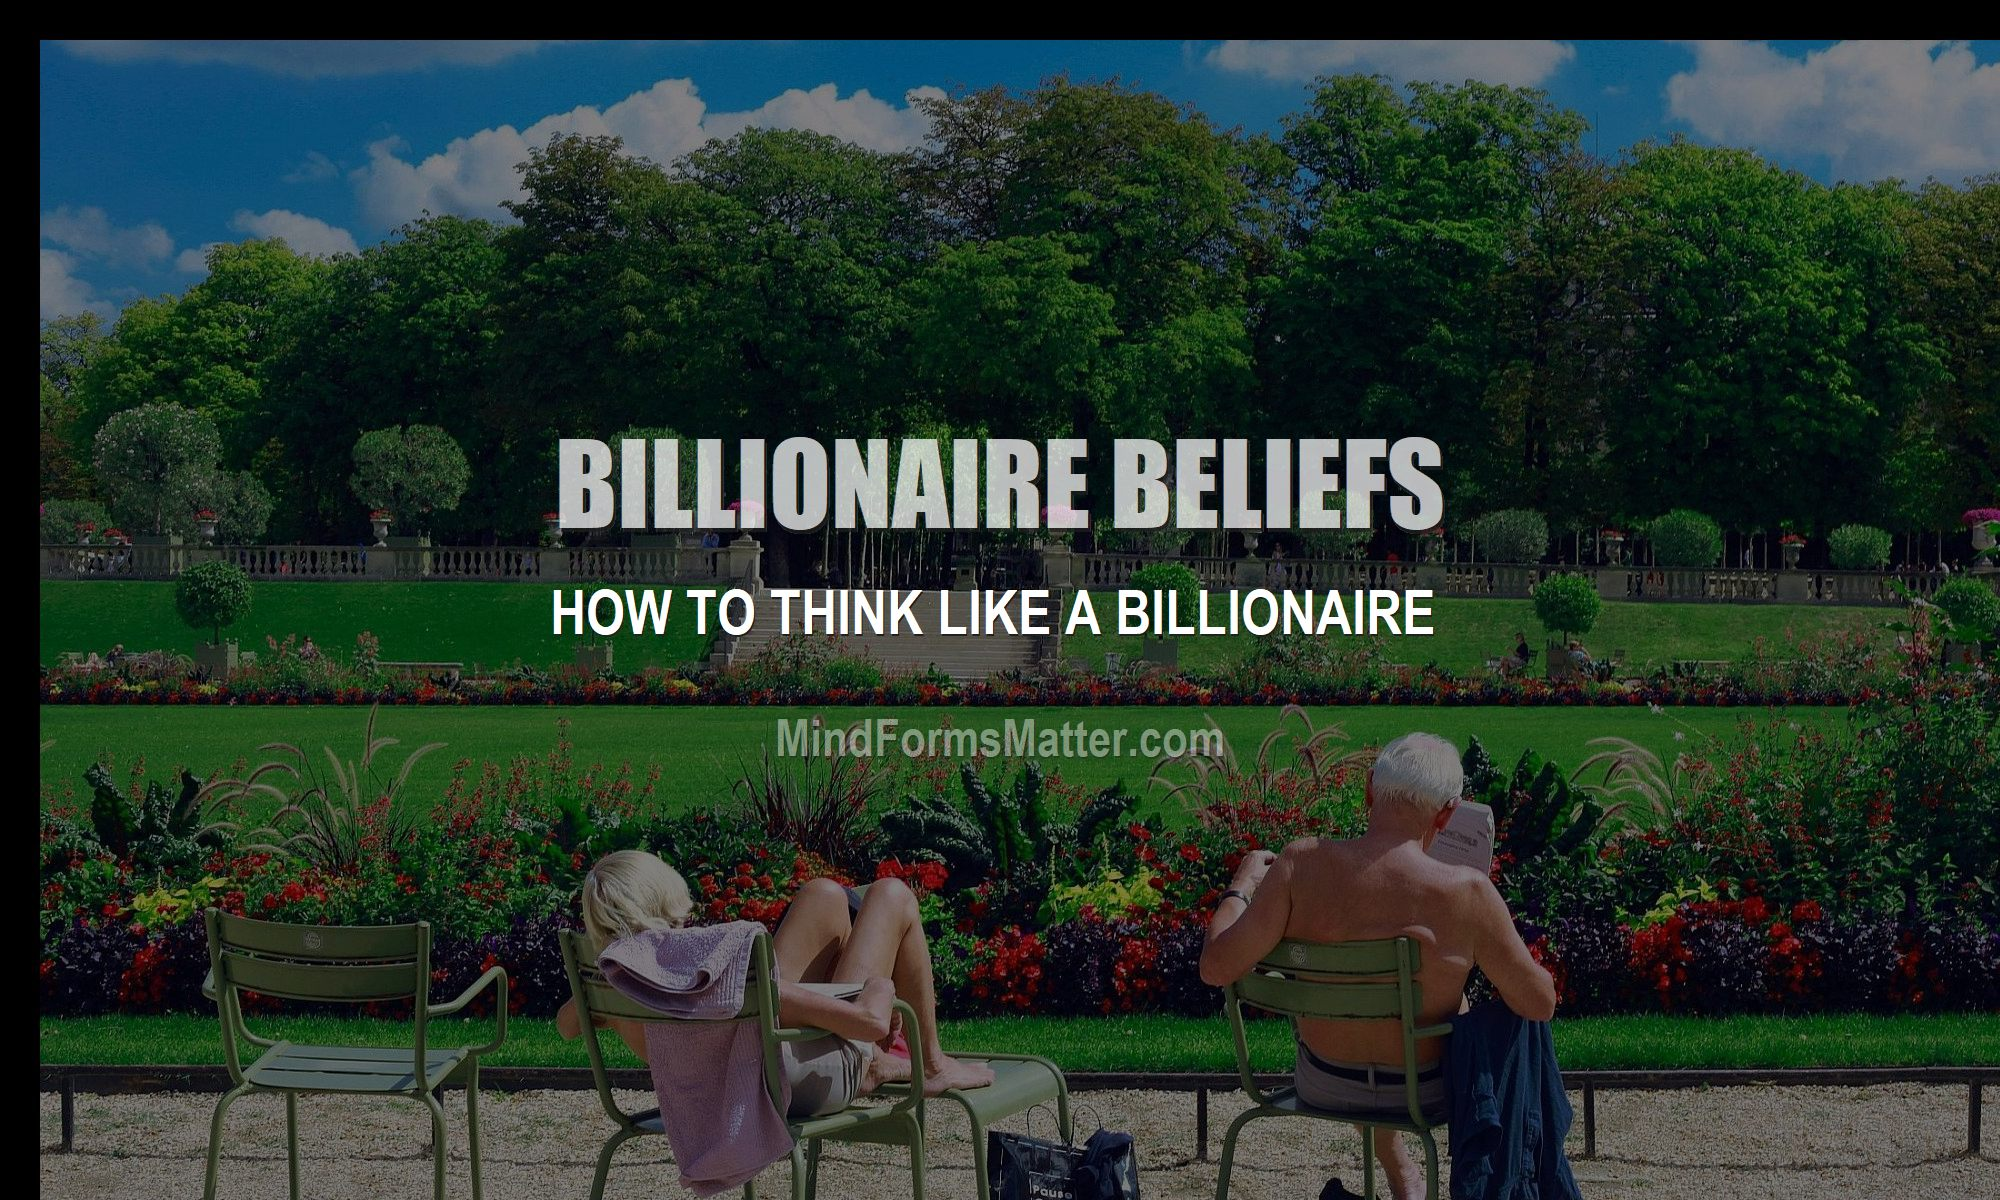 Billionaire-relaxing-depicts-mind-thoughts-create-money-wealth-think-like-strategy